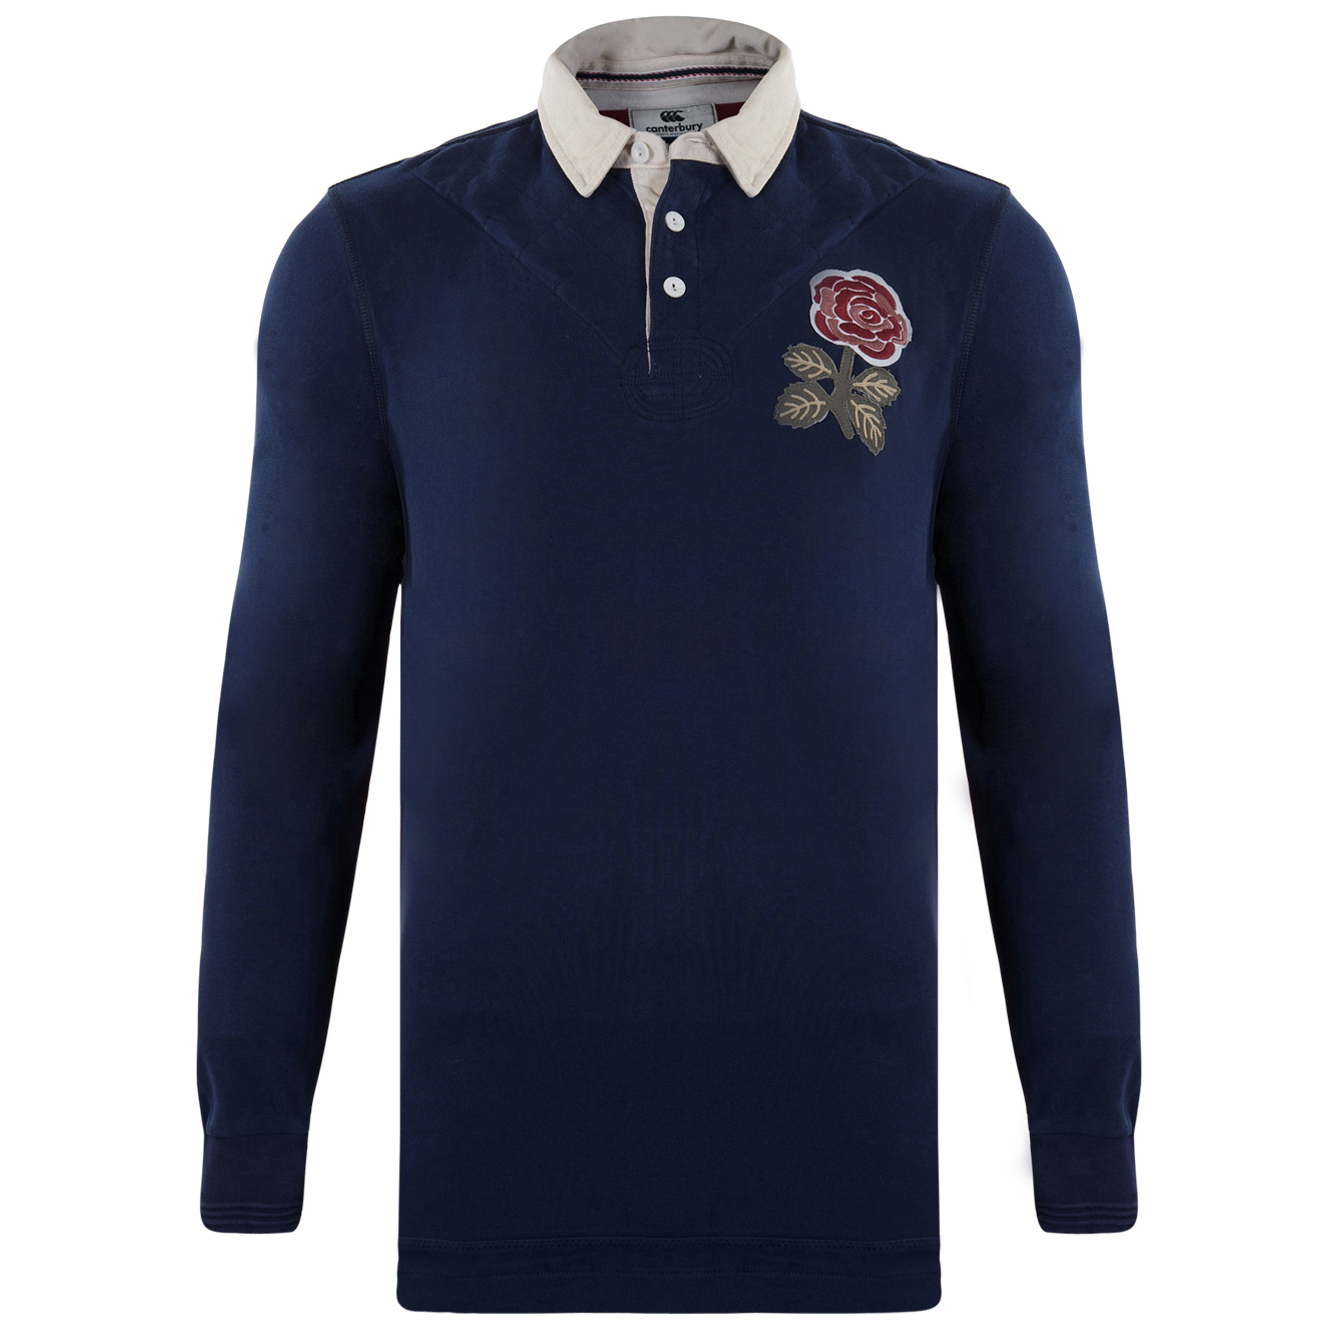 England 1871 Rugby Shirt - Peacoat - Long Sleeve Navy